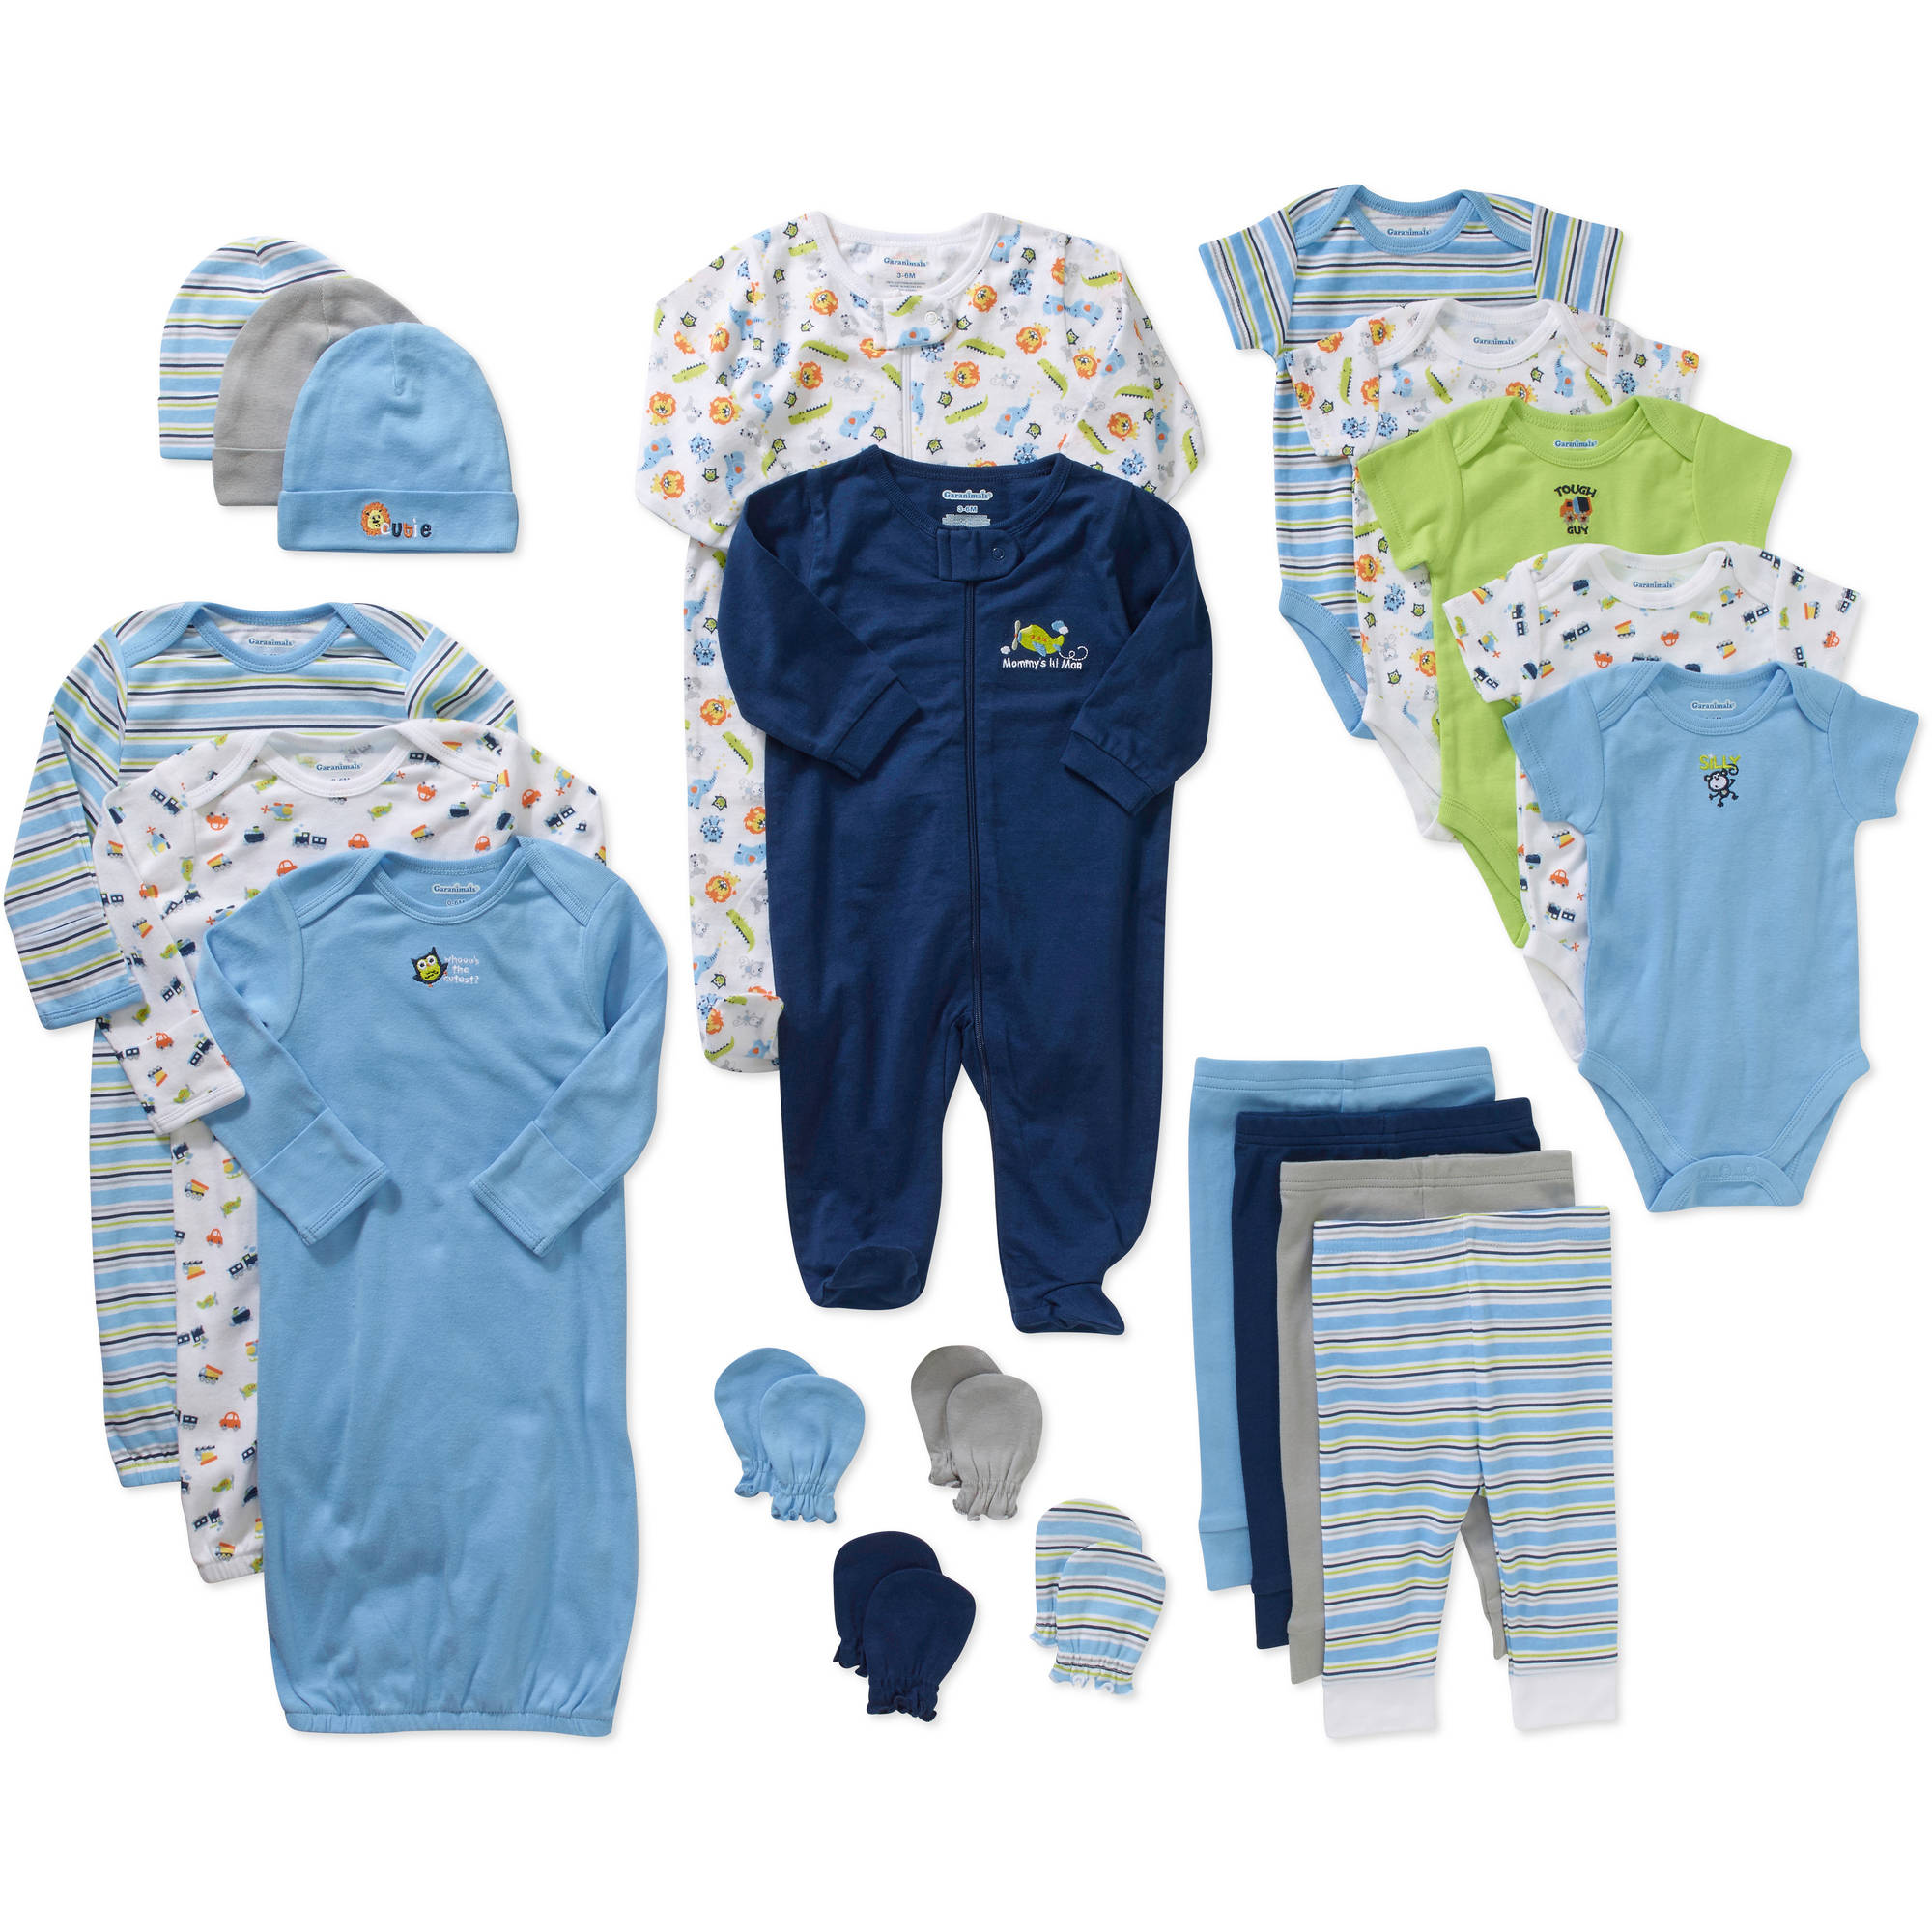 Garanimals Baby Boy 21 Piece Layette Baby Shower Gift Set